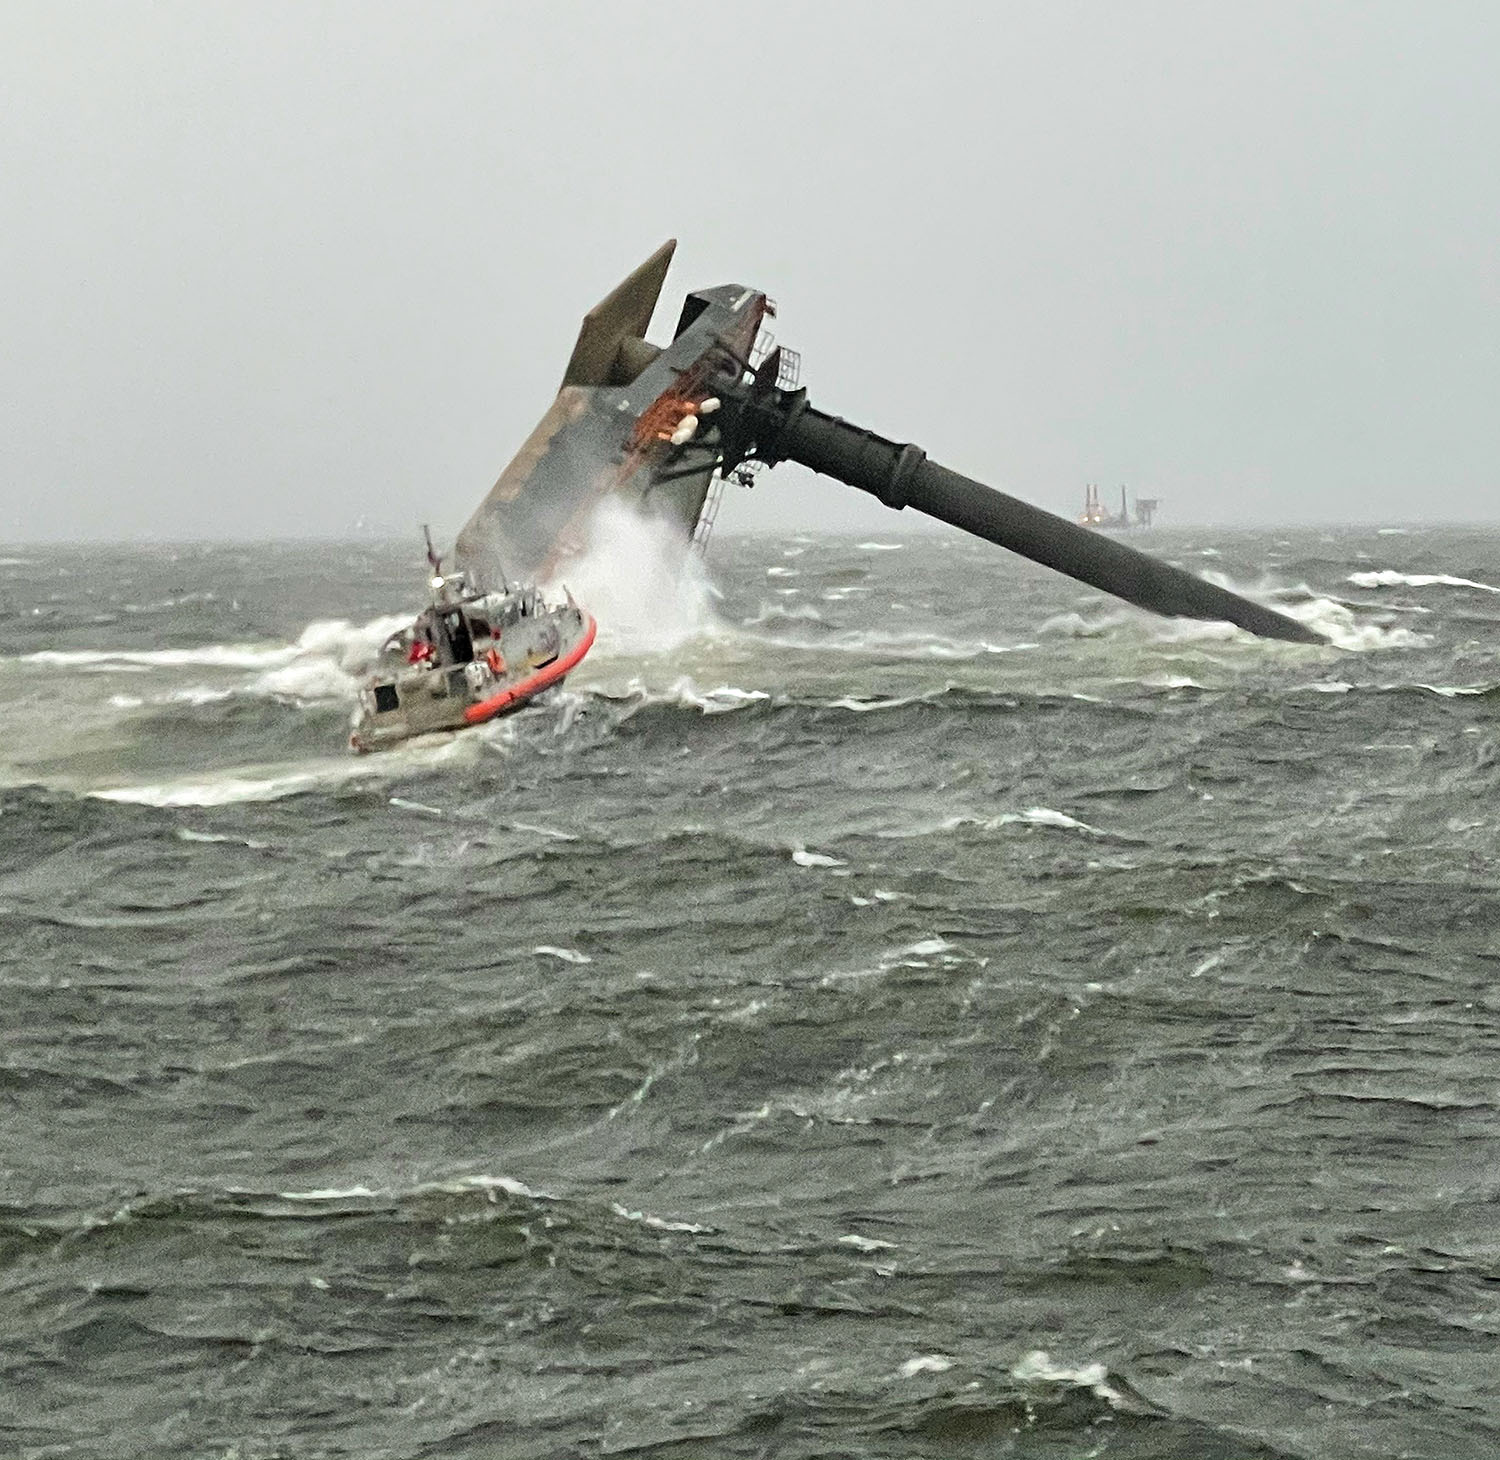 Liftboat Capsizes In Gulf Of Mexico, Coast Guard Conducts Search And Rescue